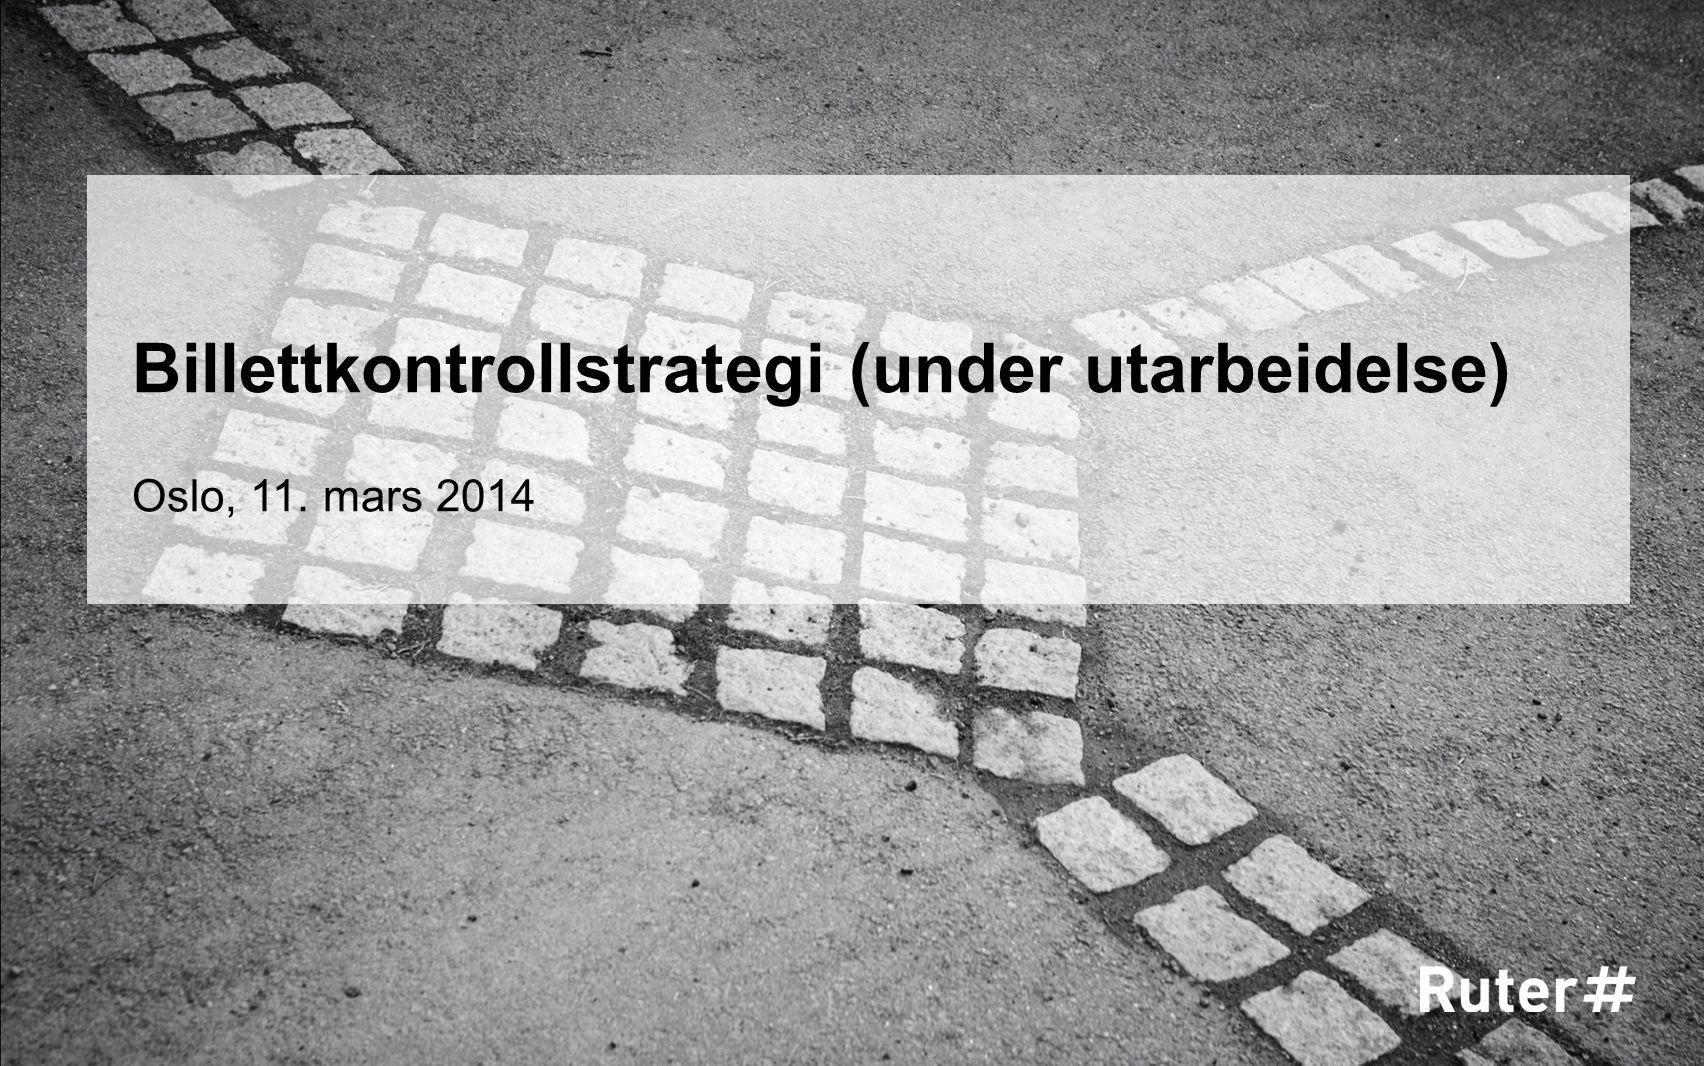 Billettkontrollstrategi (under utarbeidelse)